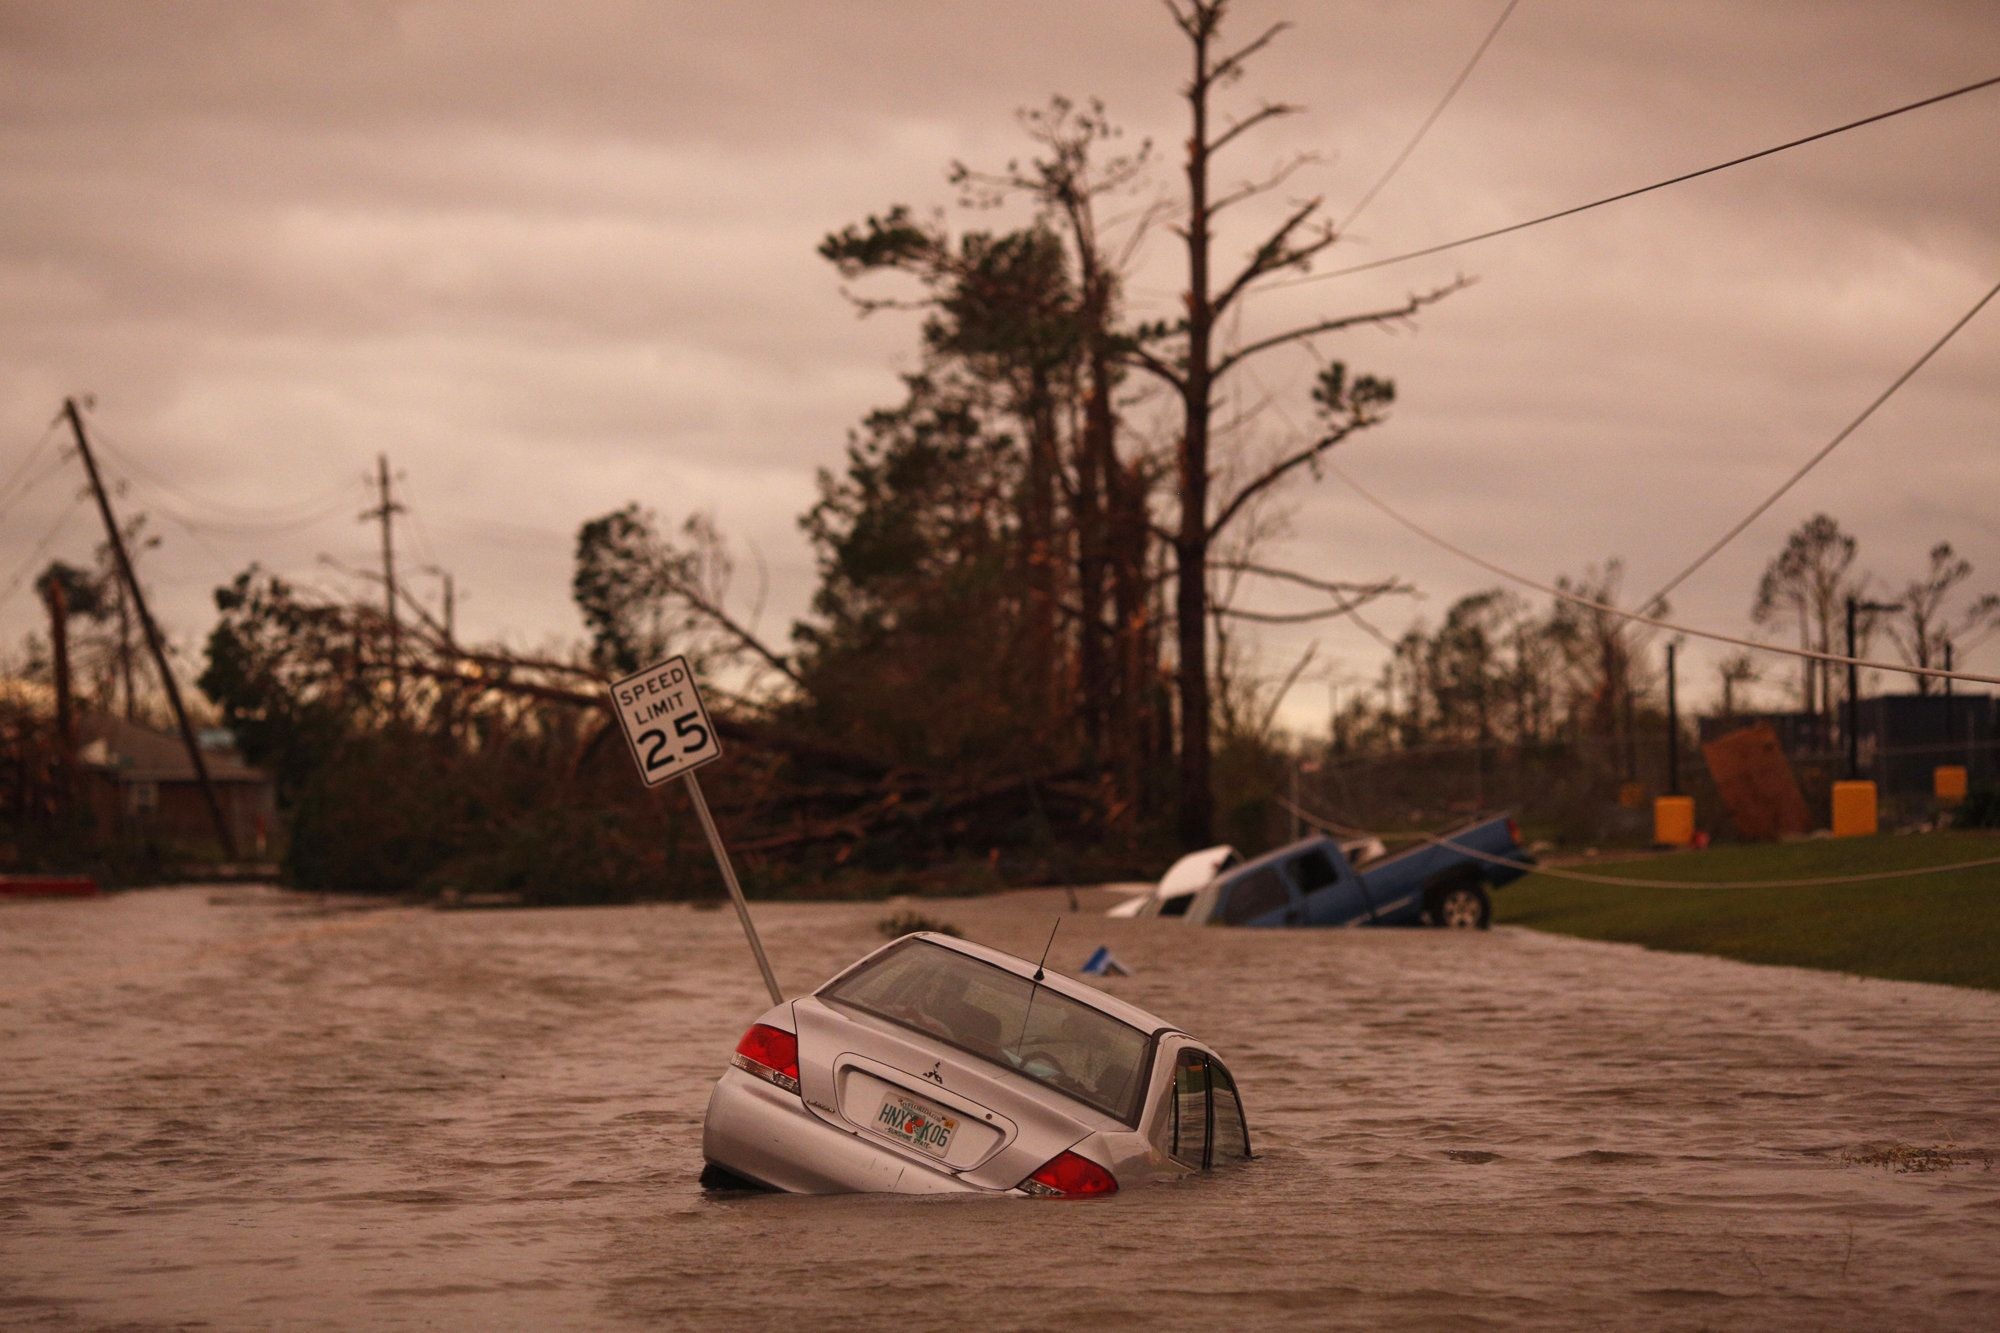 Vehicles sit partially submerged in floodwaters after Hurricane Michael hit in Panama City, Florida, U.S., on Wednesday, Oct. 10, 2018. Hurricane Michael became the strongest storm to hit the U.S. mainland since 1992, and one of the four most intense in history, with winds that reached 155 miles per hour as it made landfall in Florida. Photographer: Luke Sharrett/Bloomberg via Getty Images